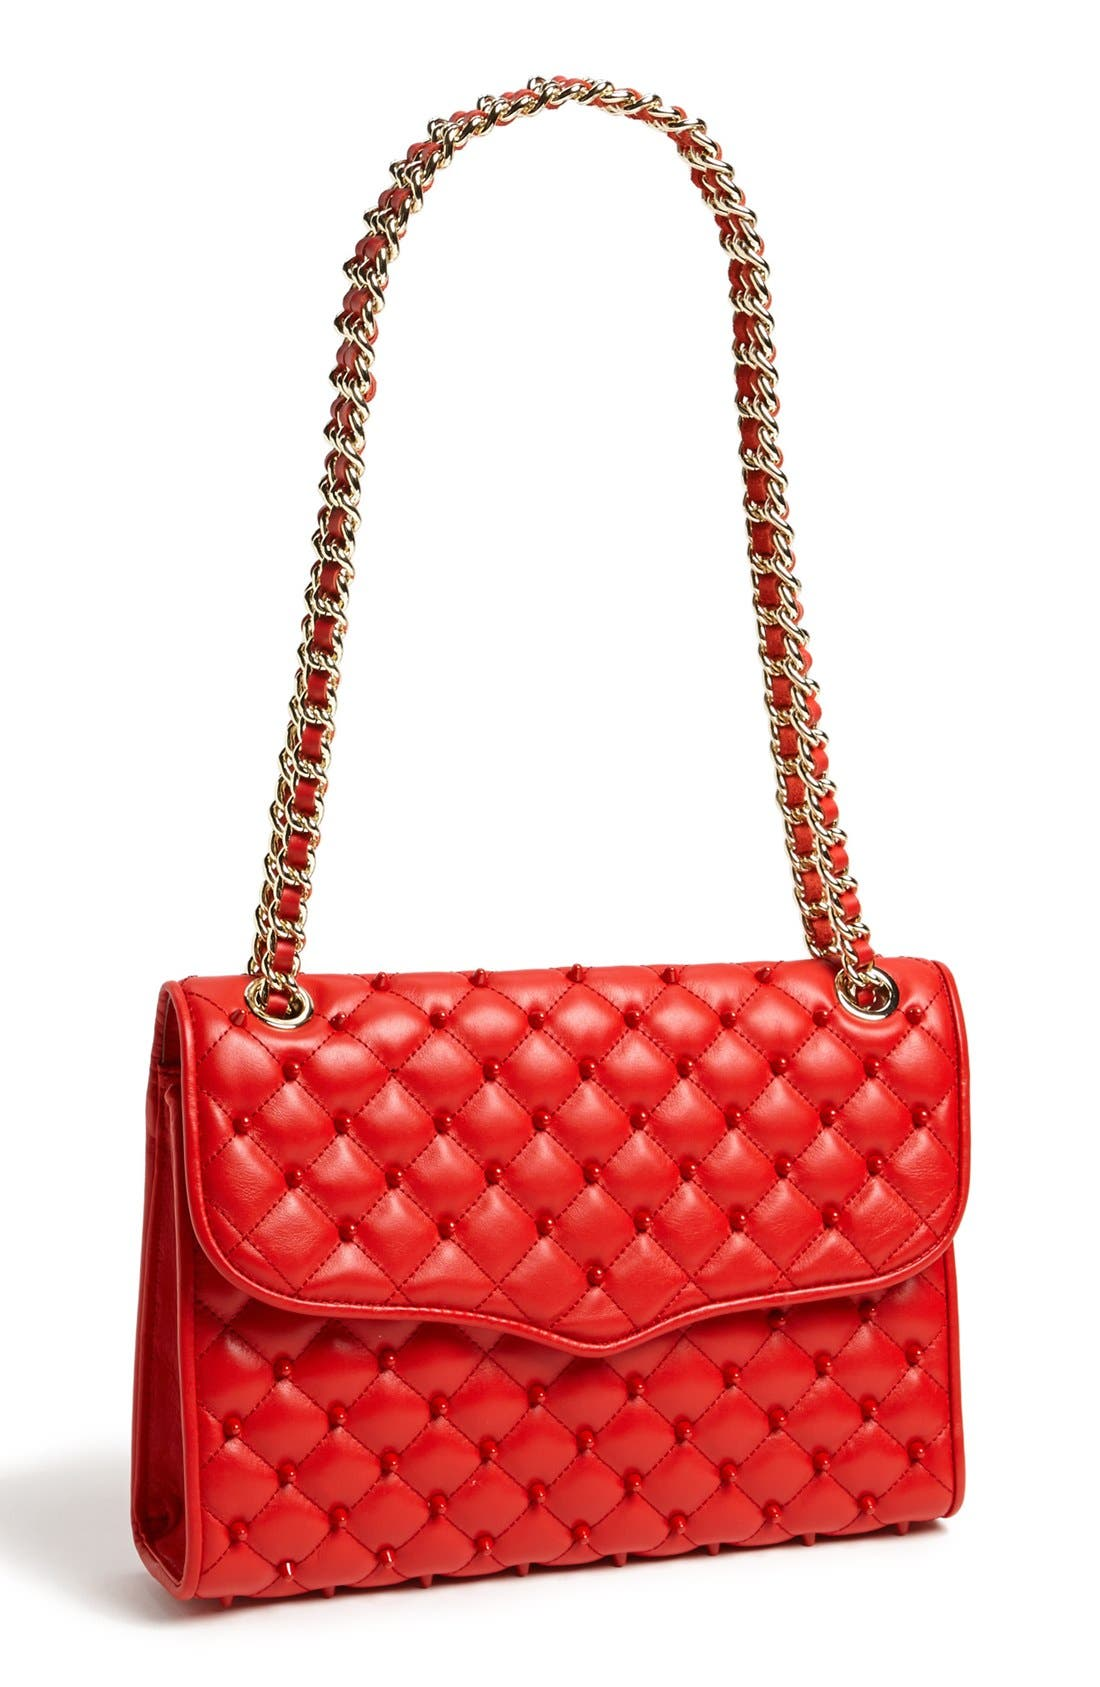 Alternate Image 1 Selected - Rebecca Minkoff 'Affair - Studded' Shoulder Bag